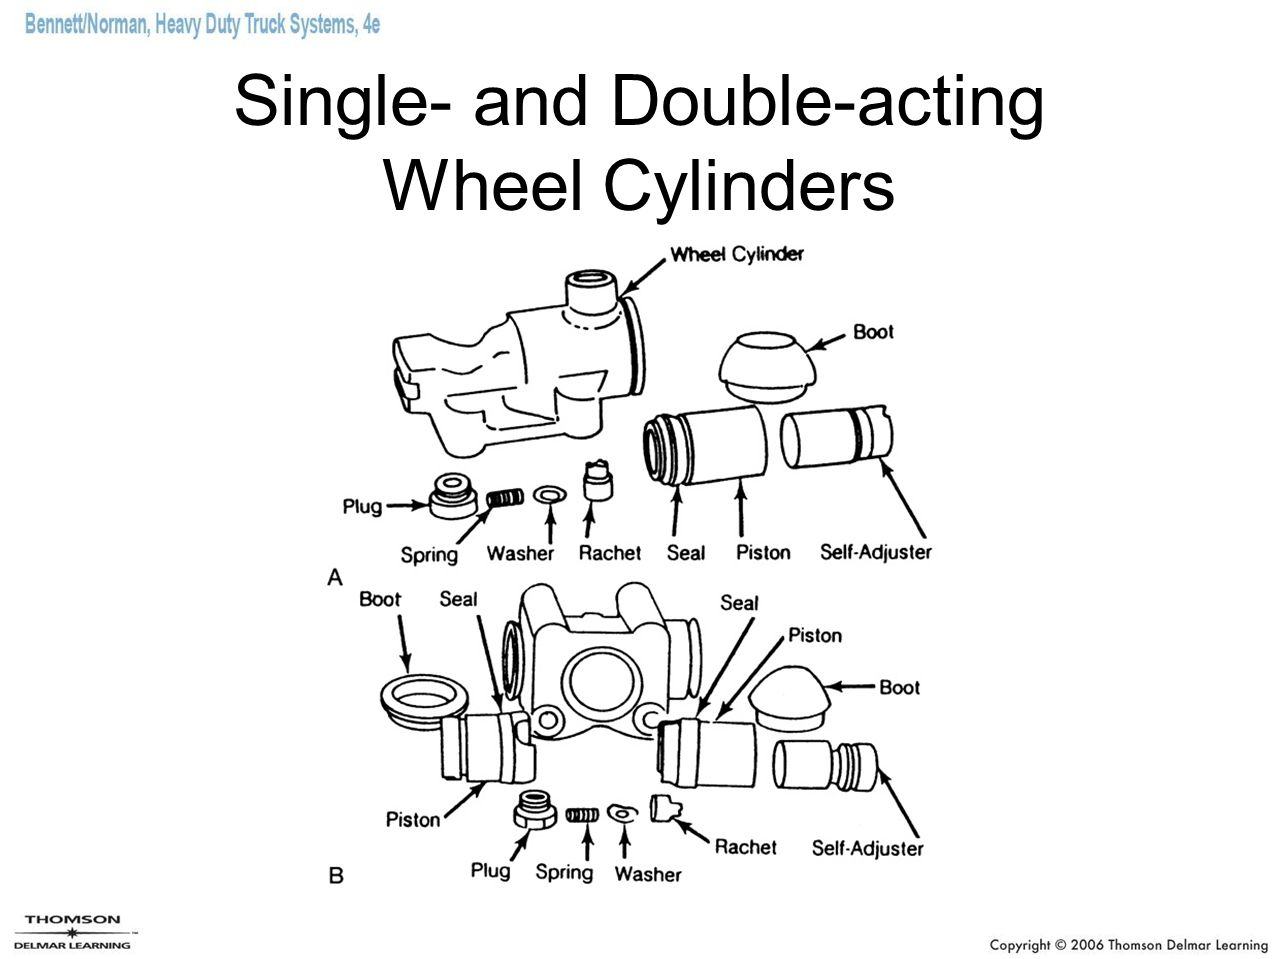 Single- and Double-acting Wheel Cylinders